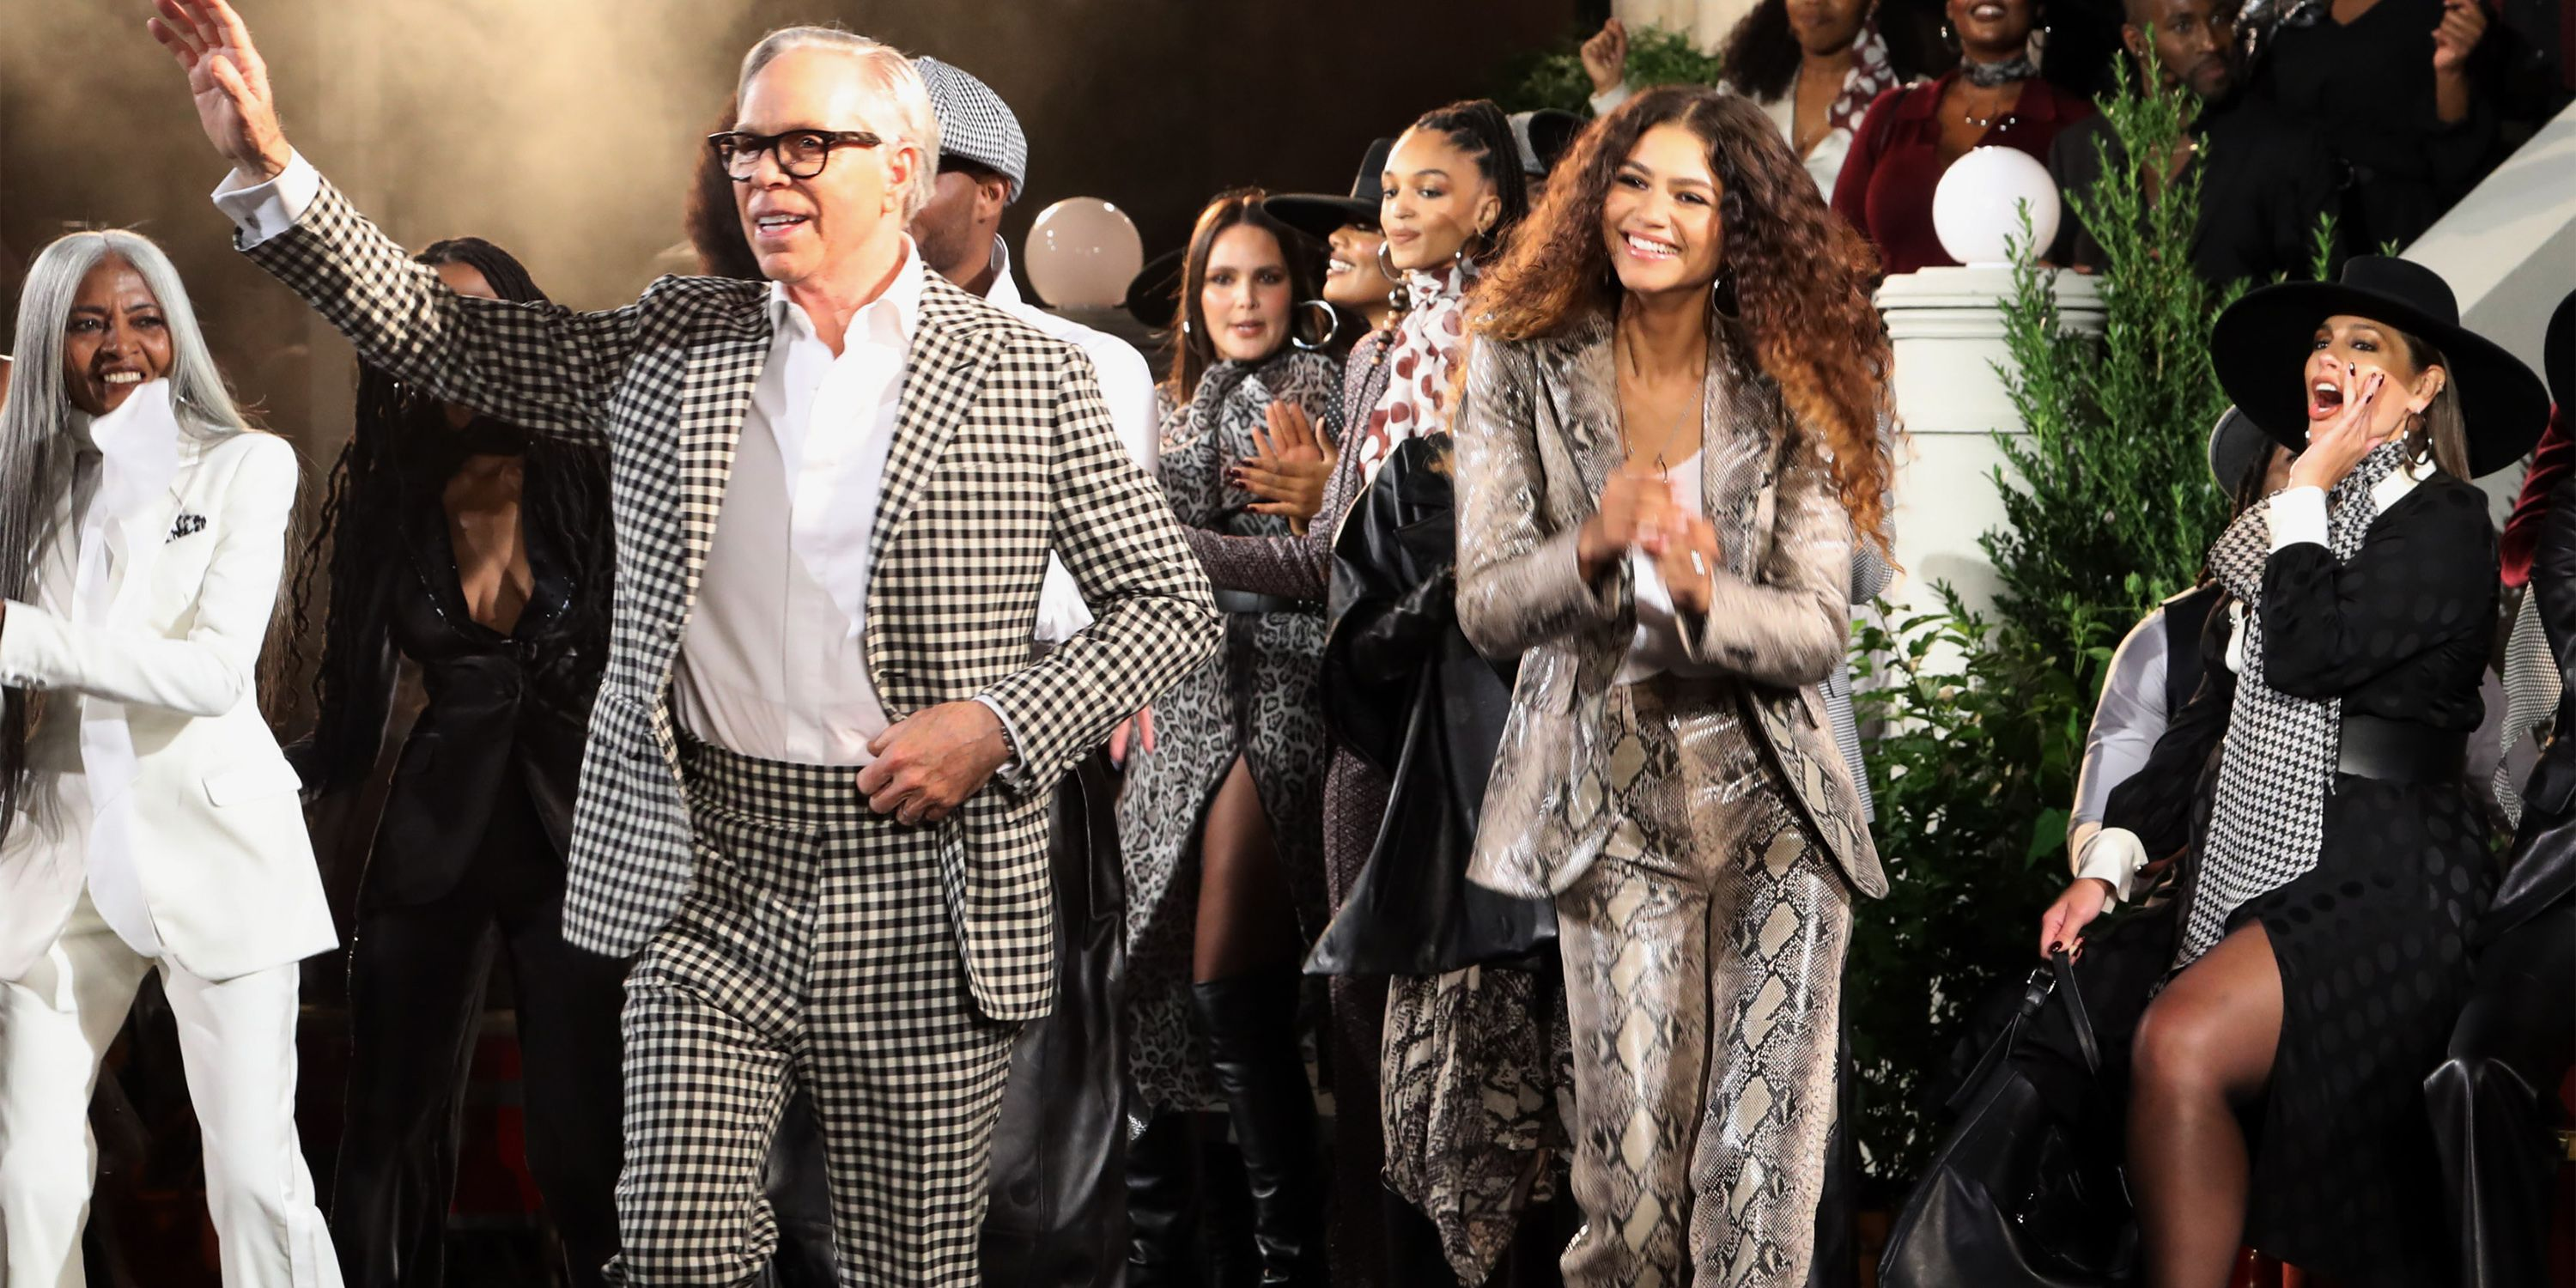 Zendaya and Tommy Hilfiger Show at Harlem's Apollo Theater